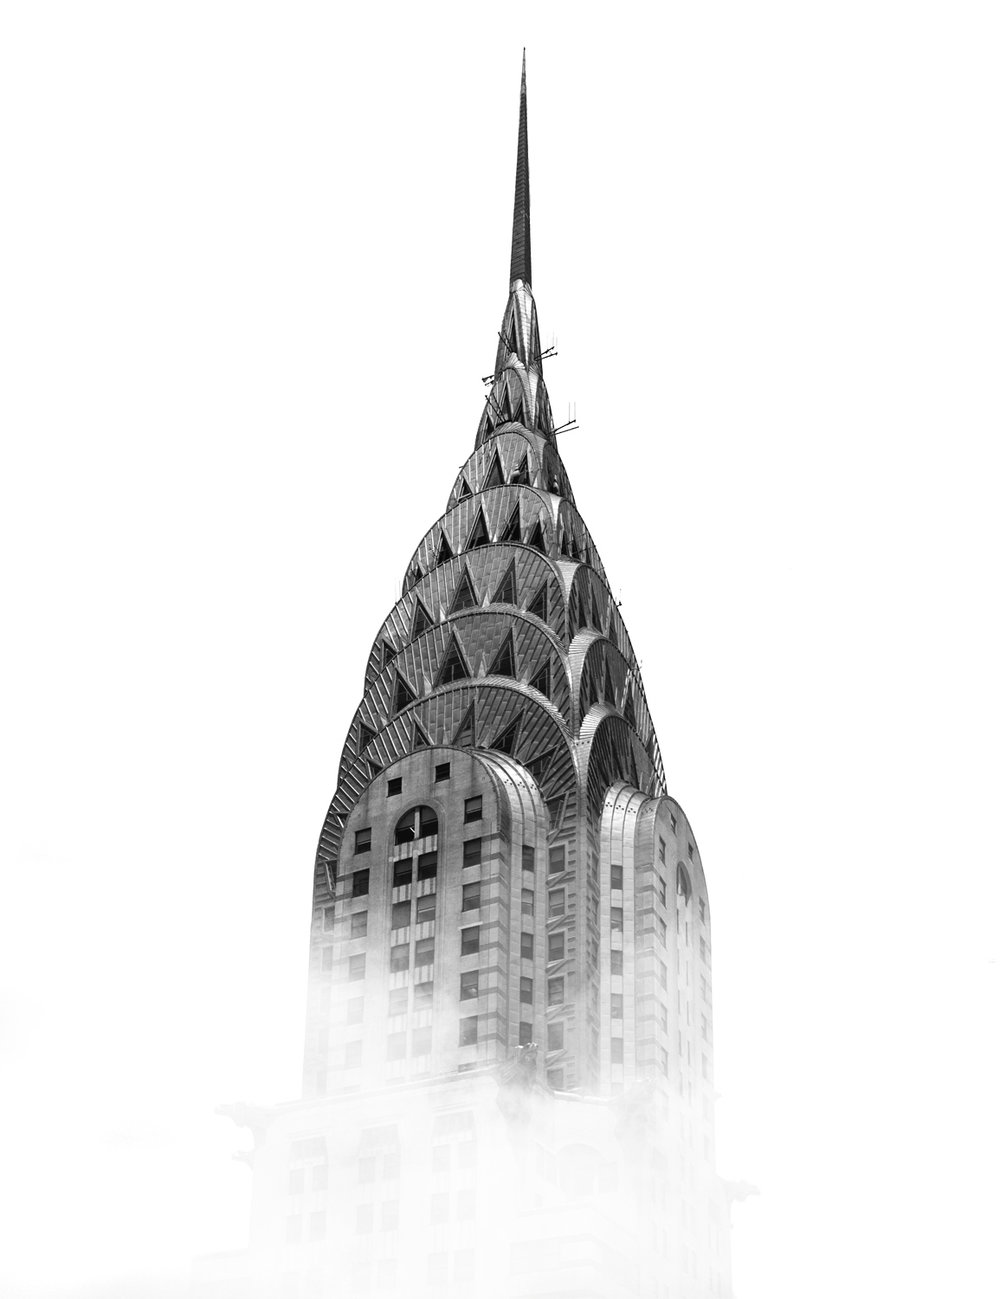 chrysler-building-architecture-photography-commercial-real-estate-photography-nyc-katrina-eugenia-art-deco-black-and-white-nyc-cushman-and-wakefield34.jpg